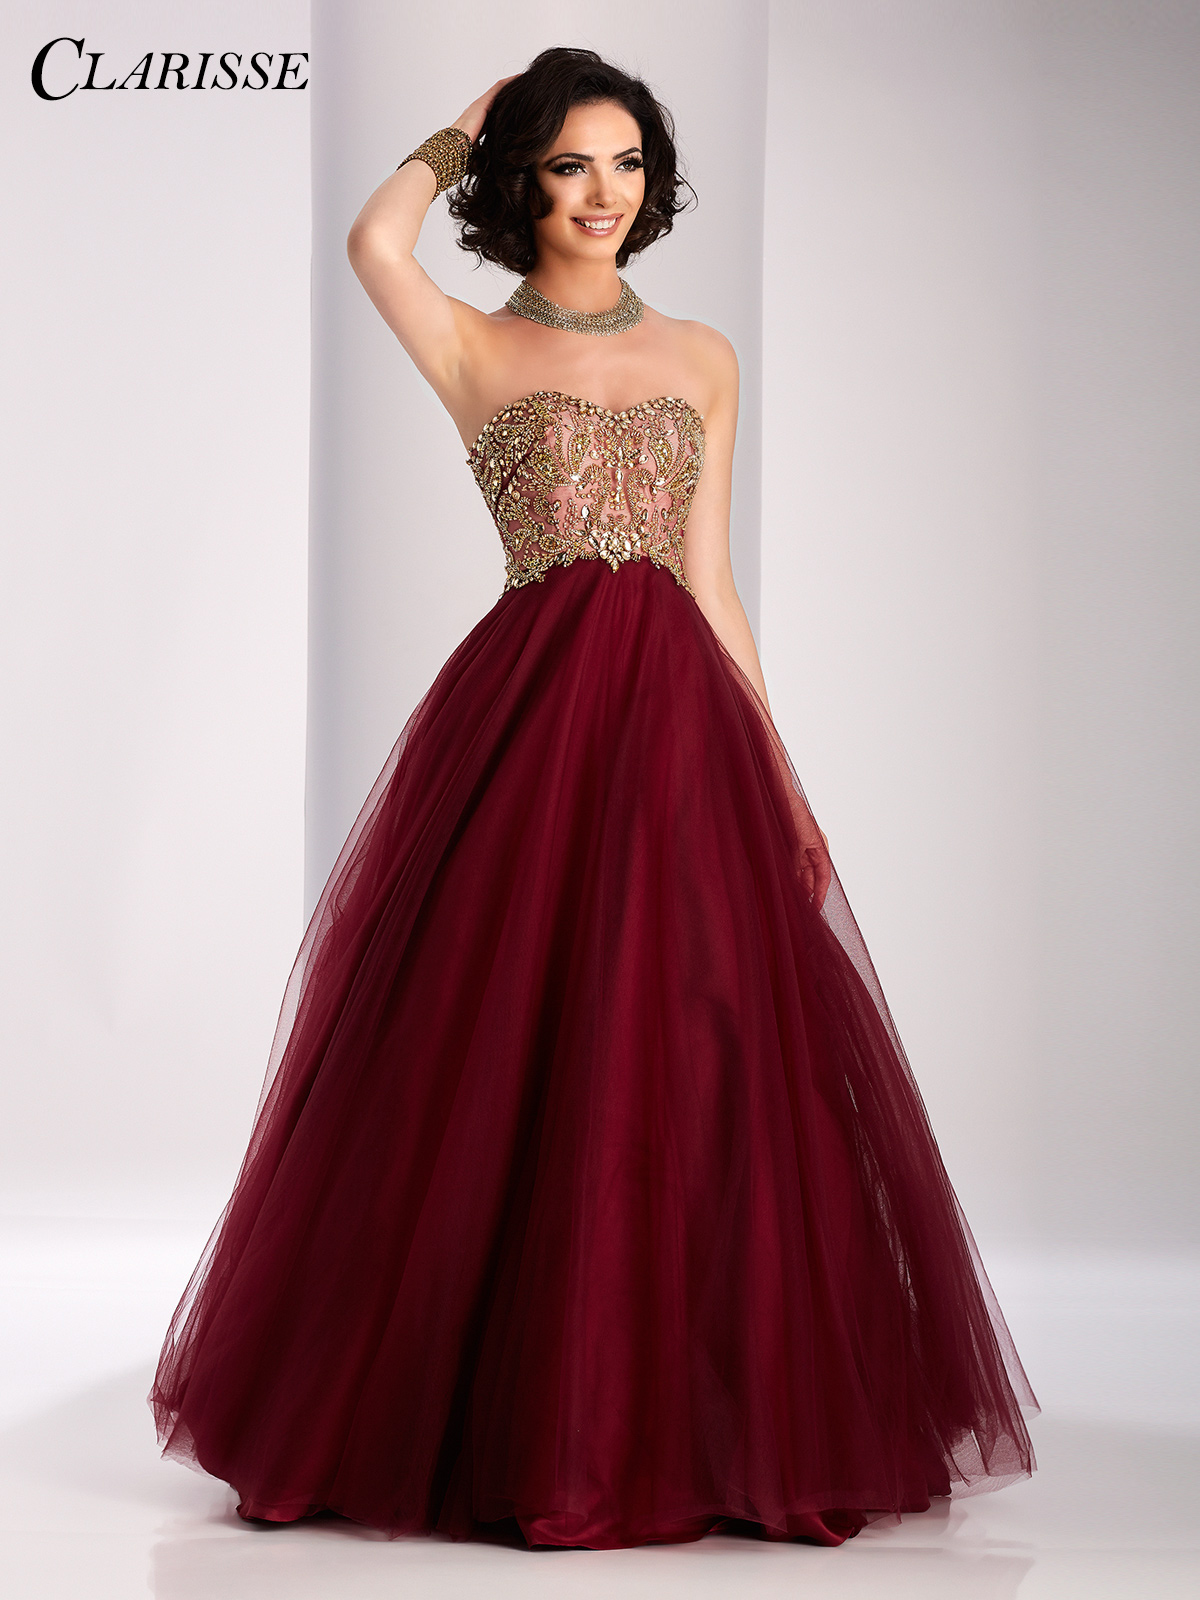 prom gowns clarisse two tone ball gown 3011 bvsbpux